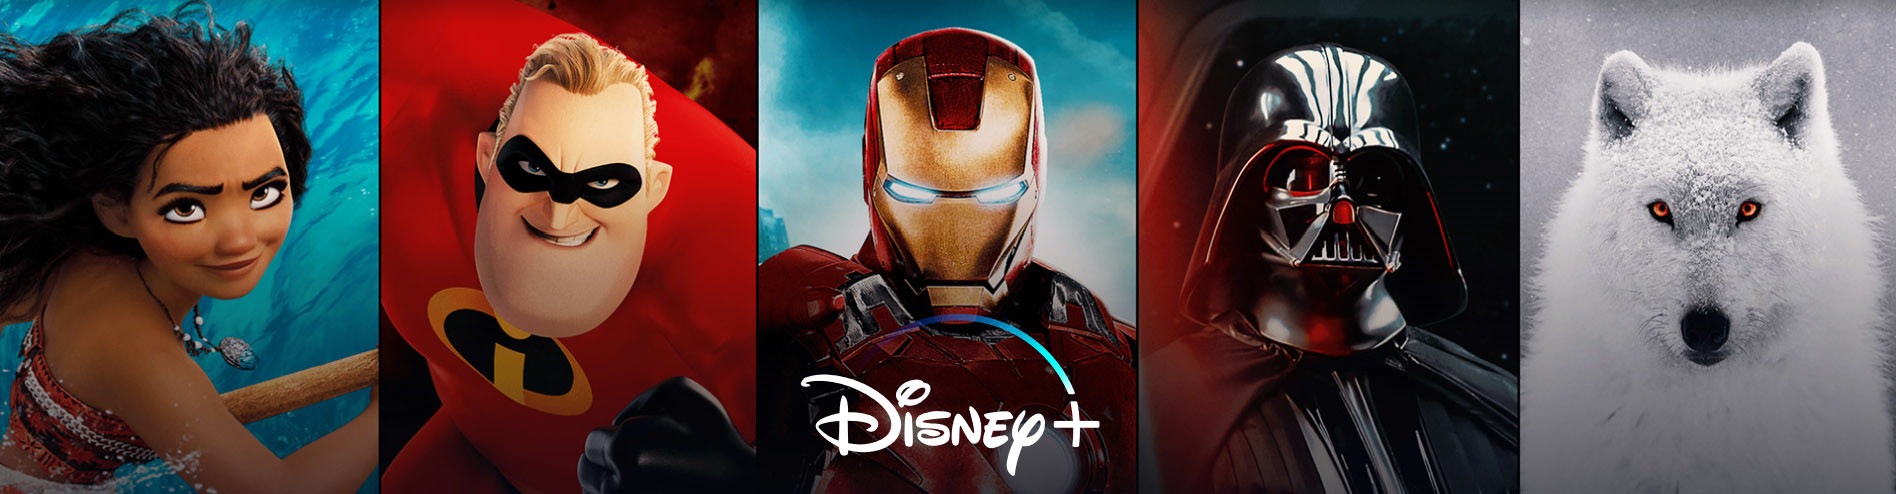 Disney+ serie e film disponibili in catalogo